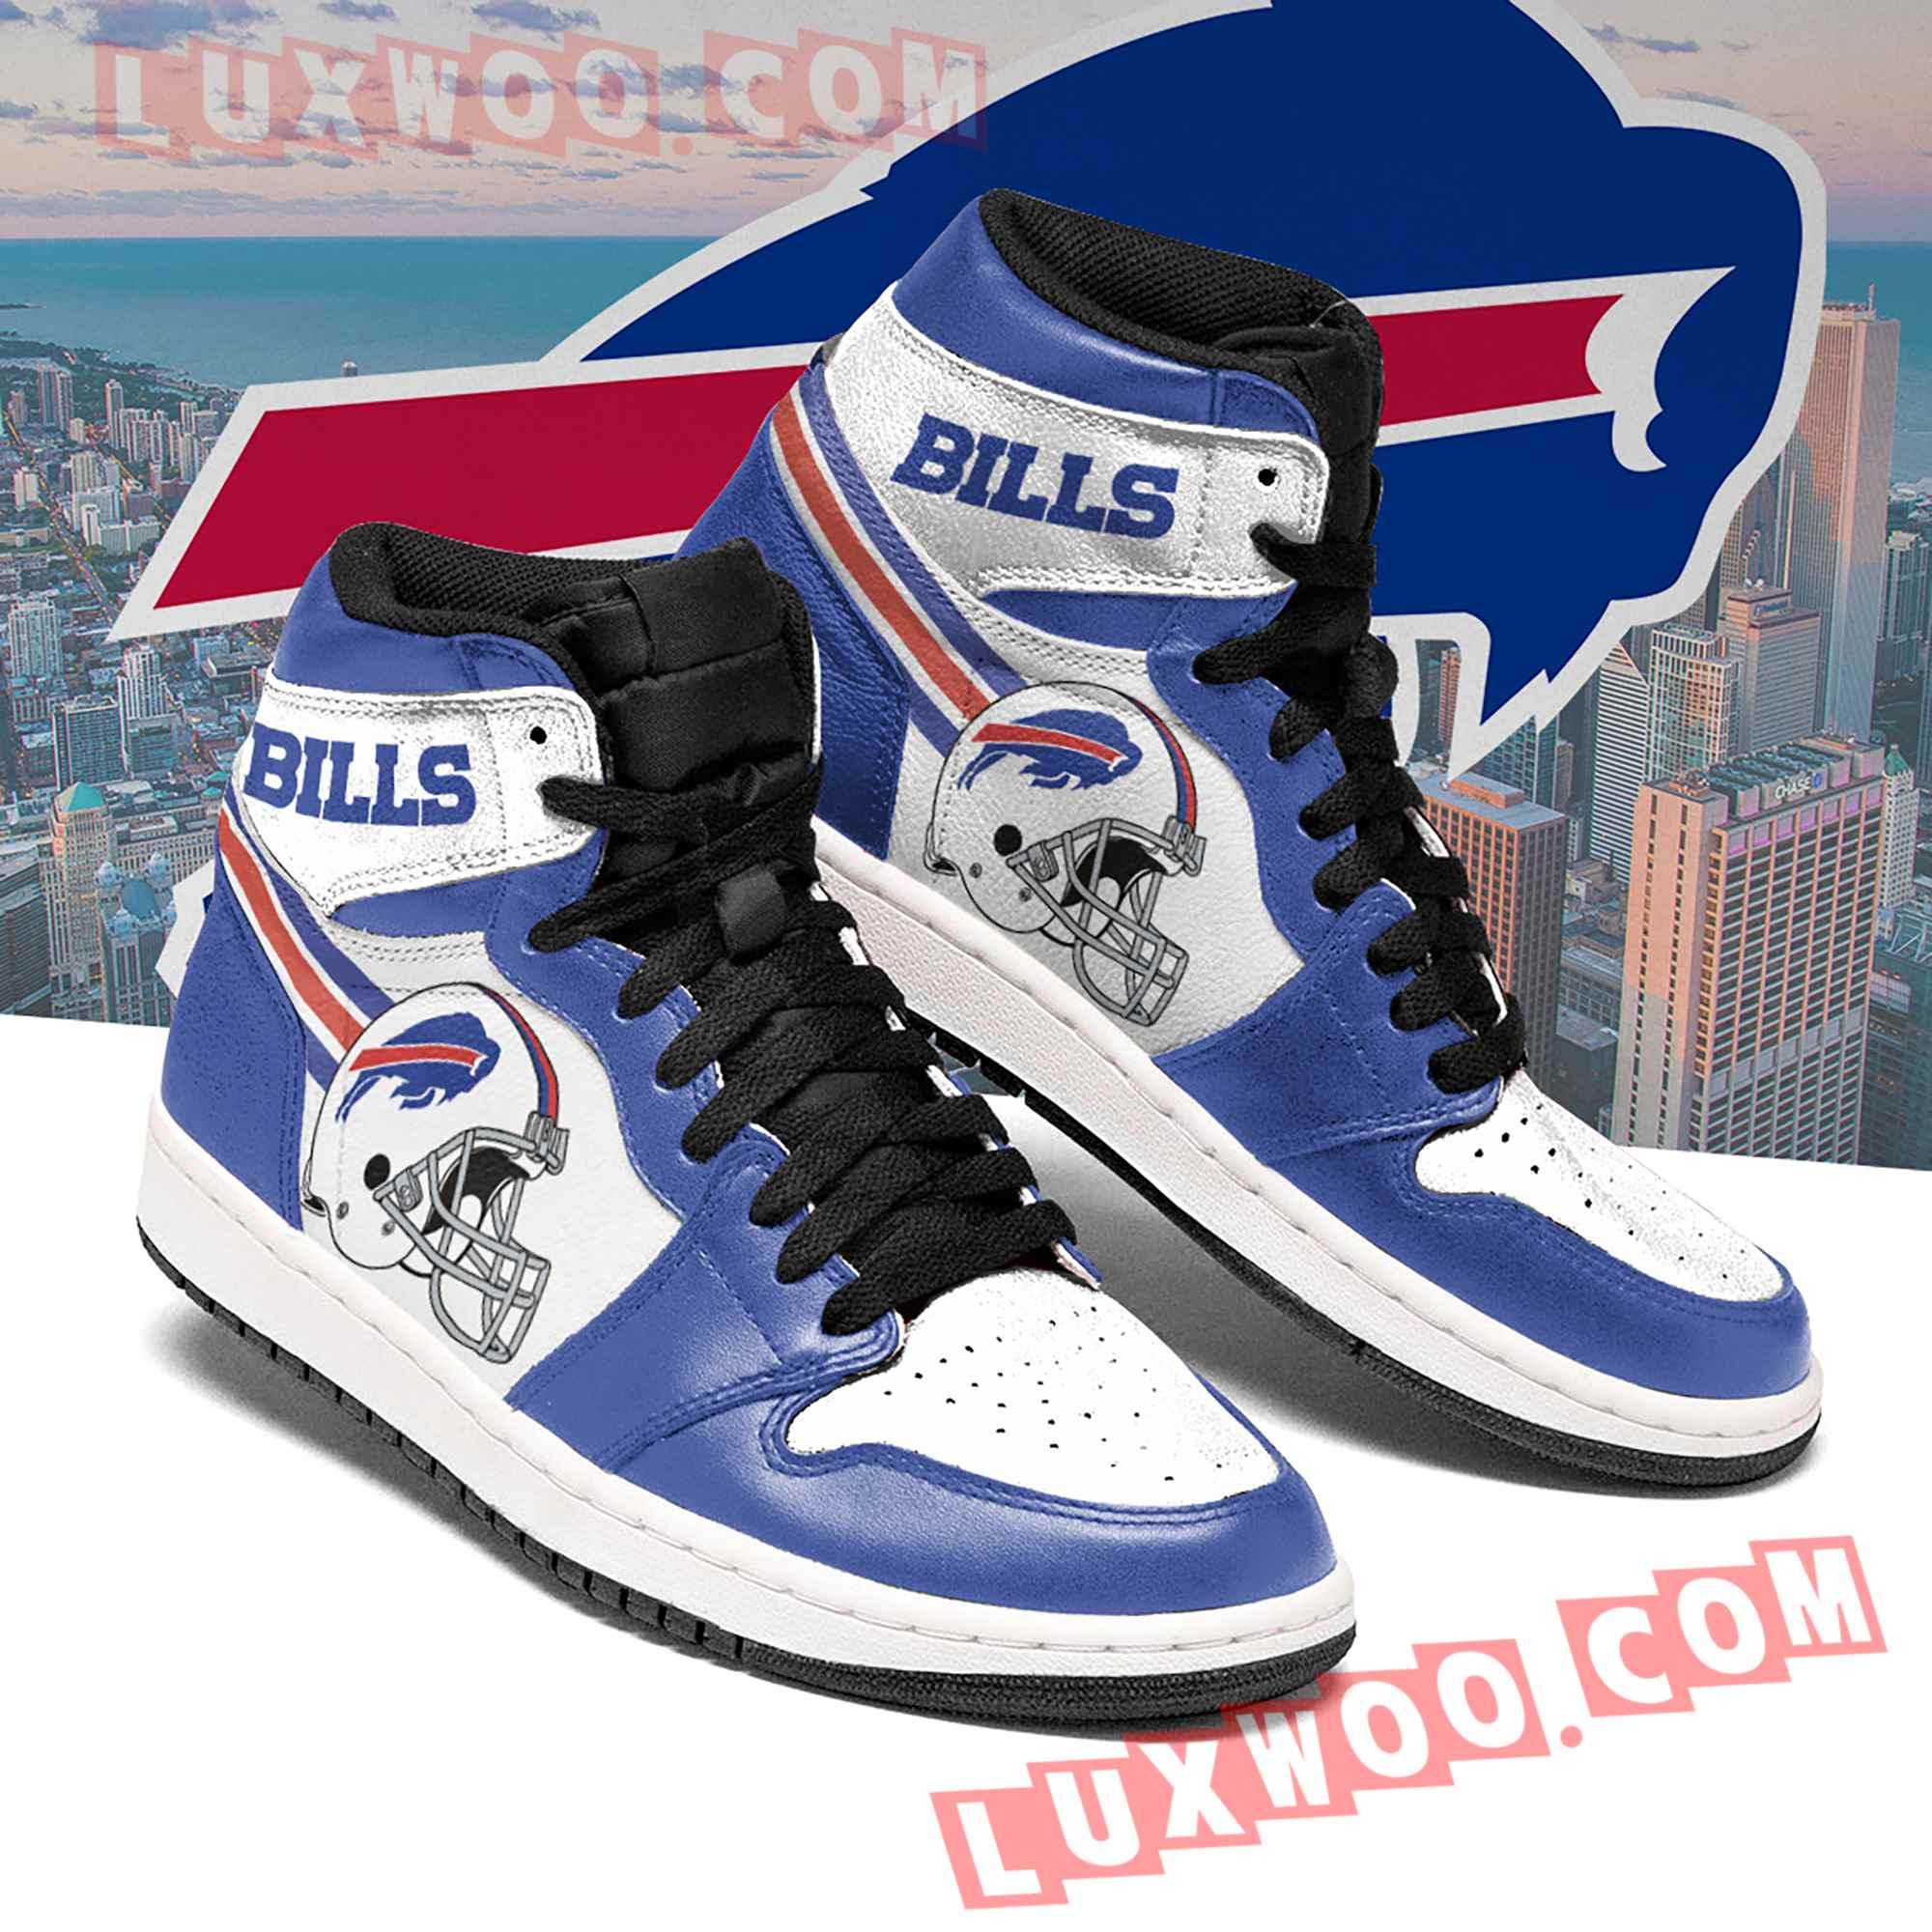 Buffalo Bills Nfl Air Jordan 1 Custom Shoes Sneaker V3